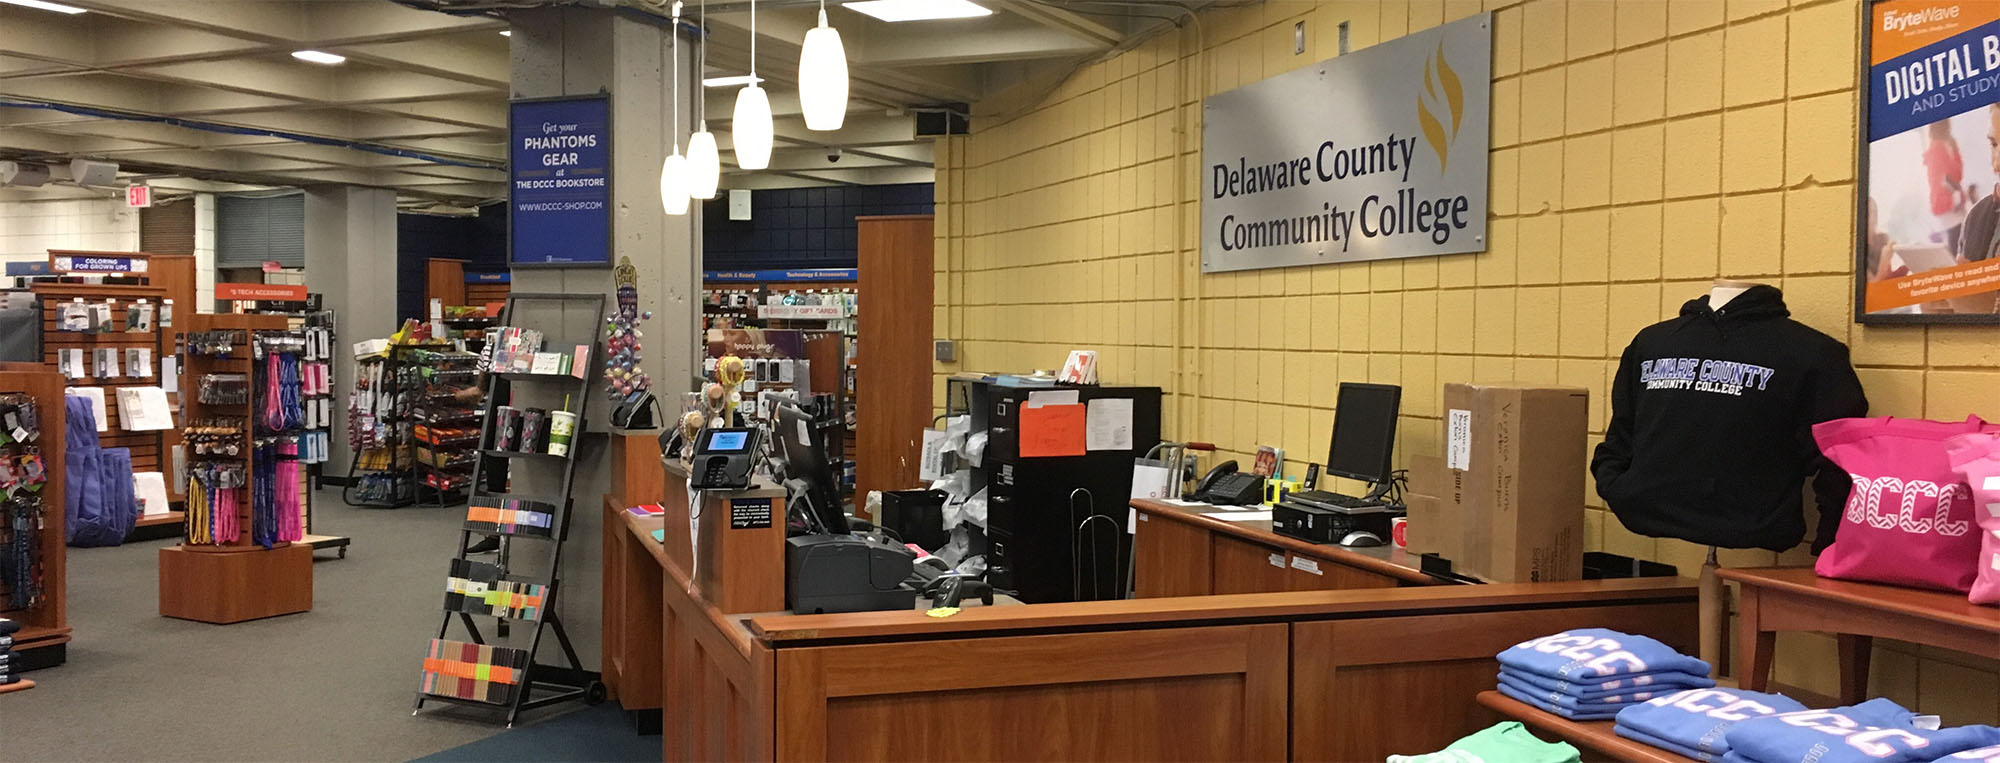 Delaware County Community College Campus Store - Delaware With Regard To Delaware County College Calendar 2020